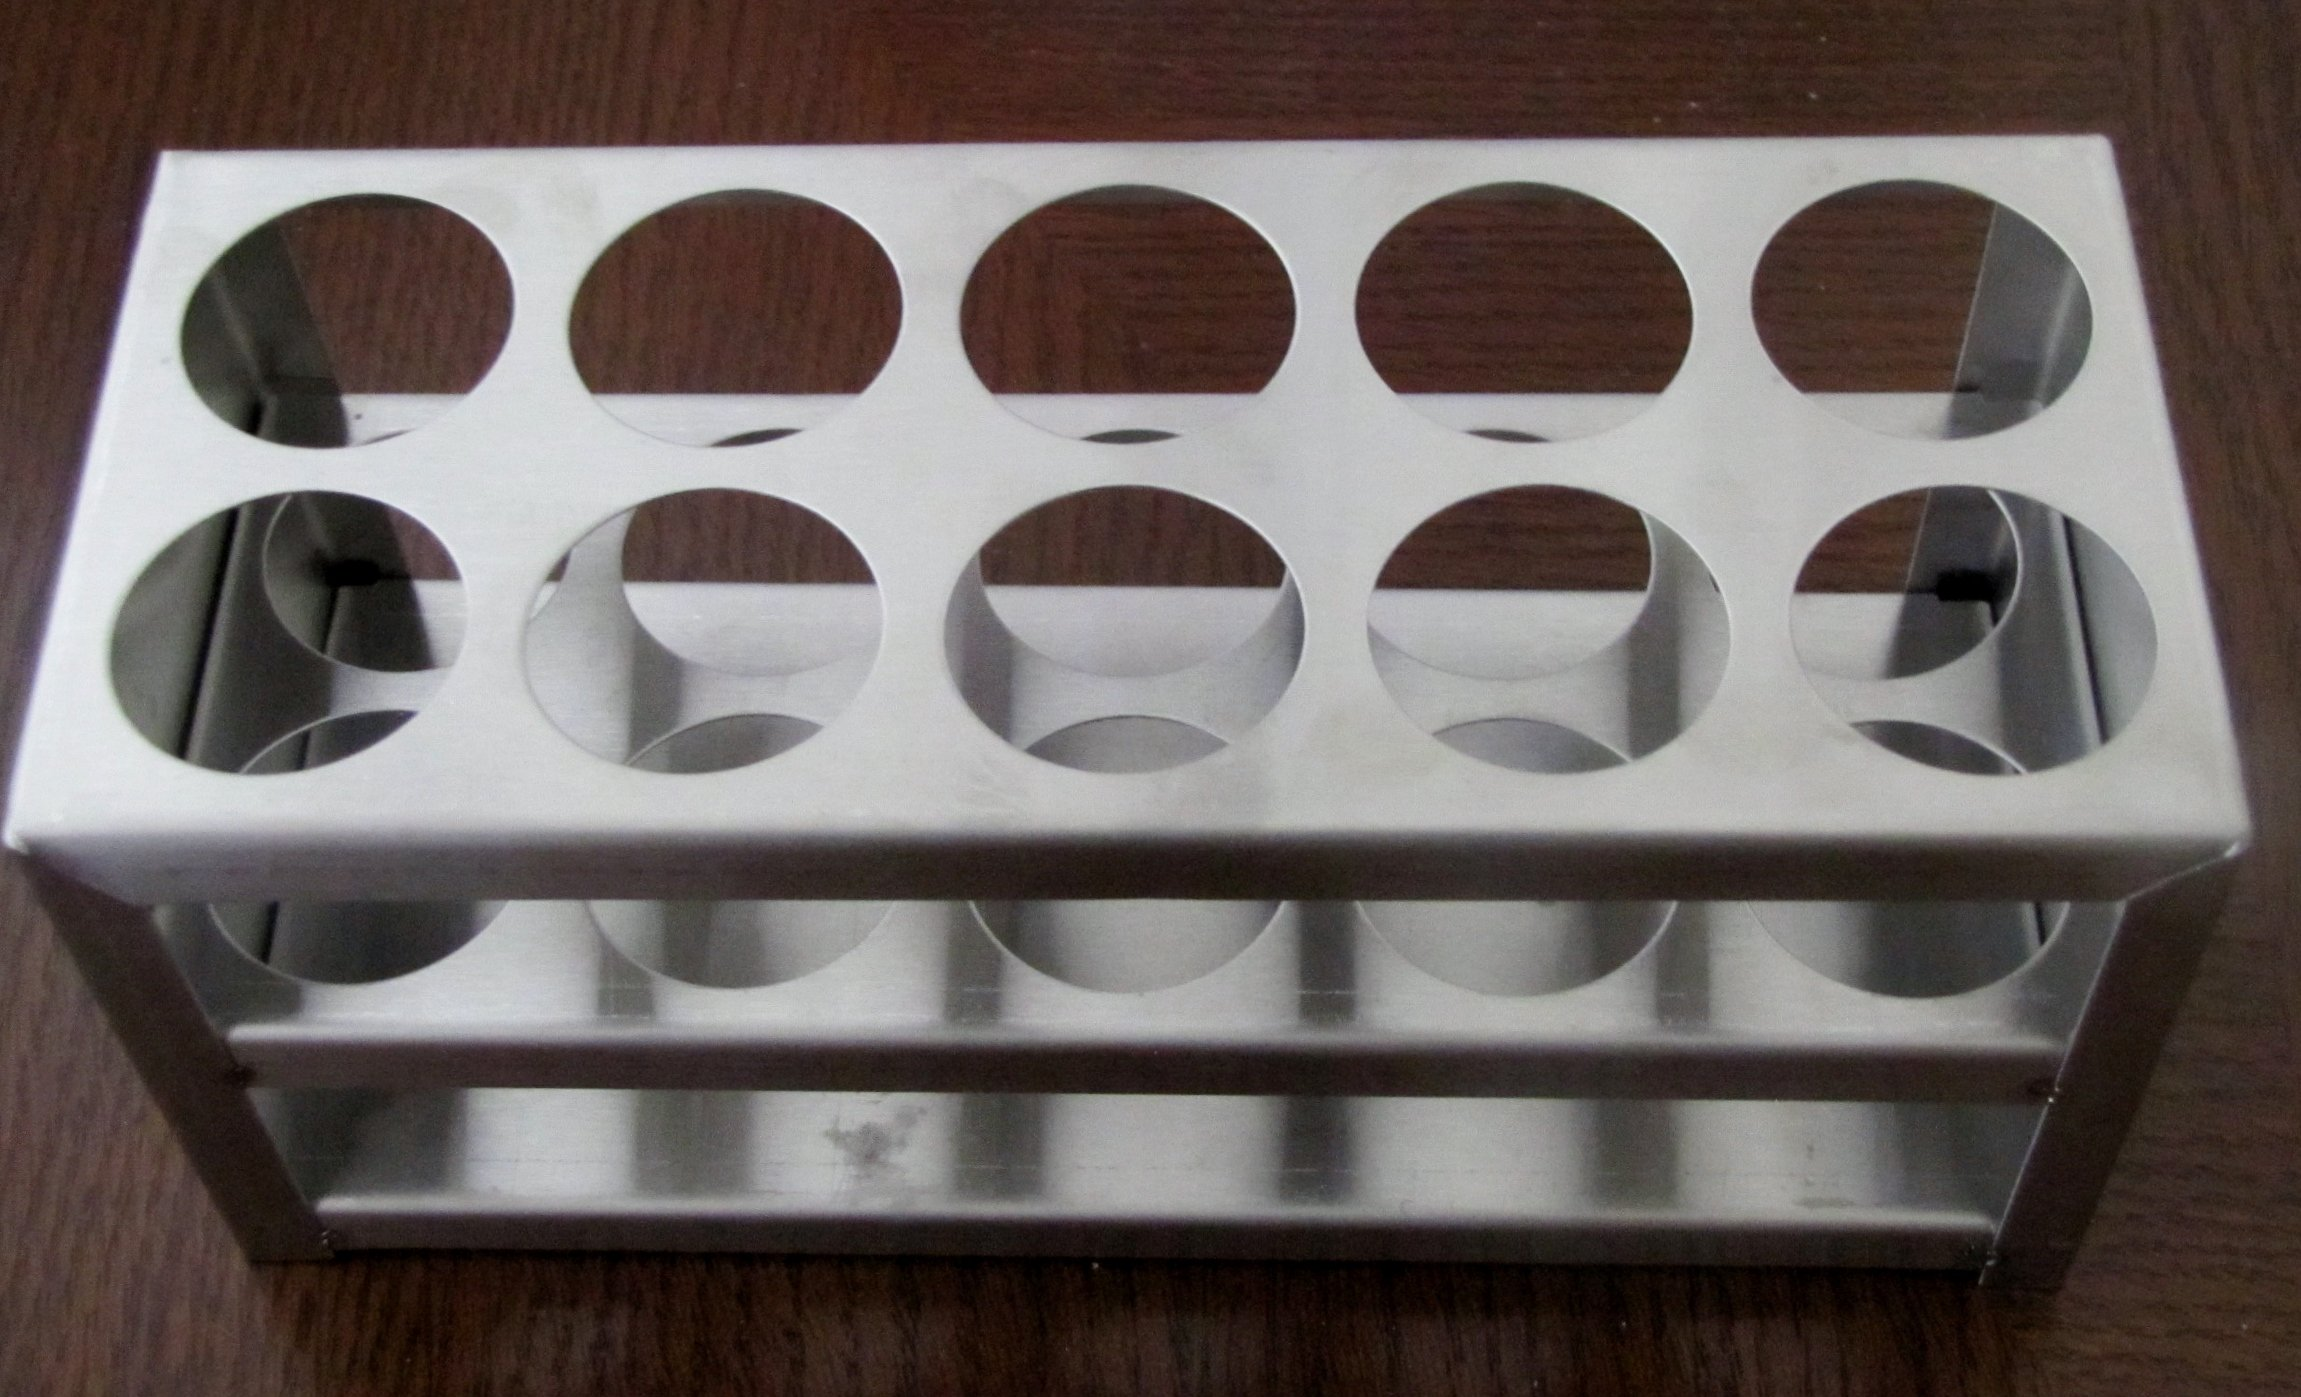 Stainless Steel Test Tube Rack, 10 Holes, 30 Mm (1 1/8''), 50 Ml